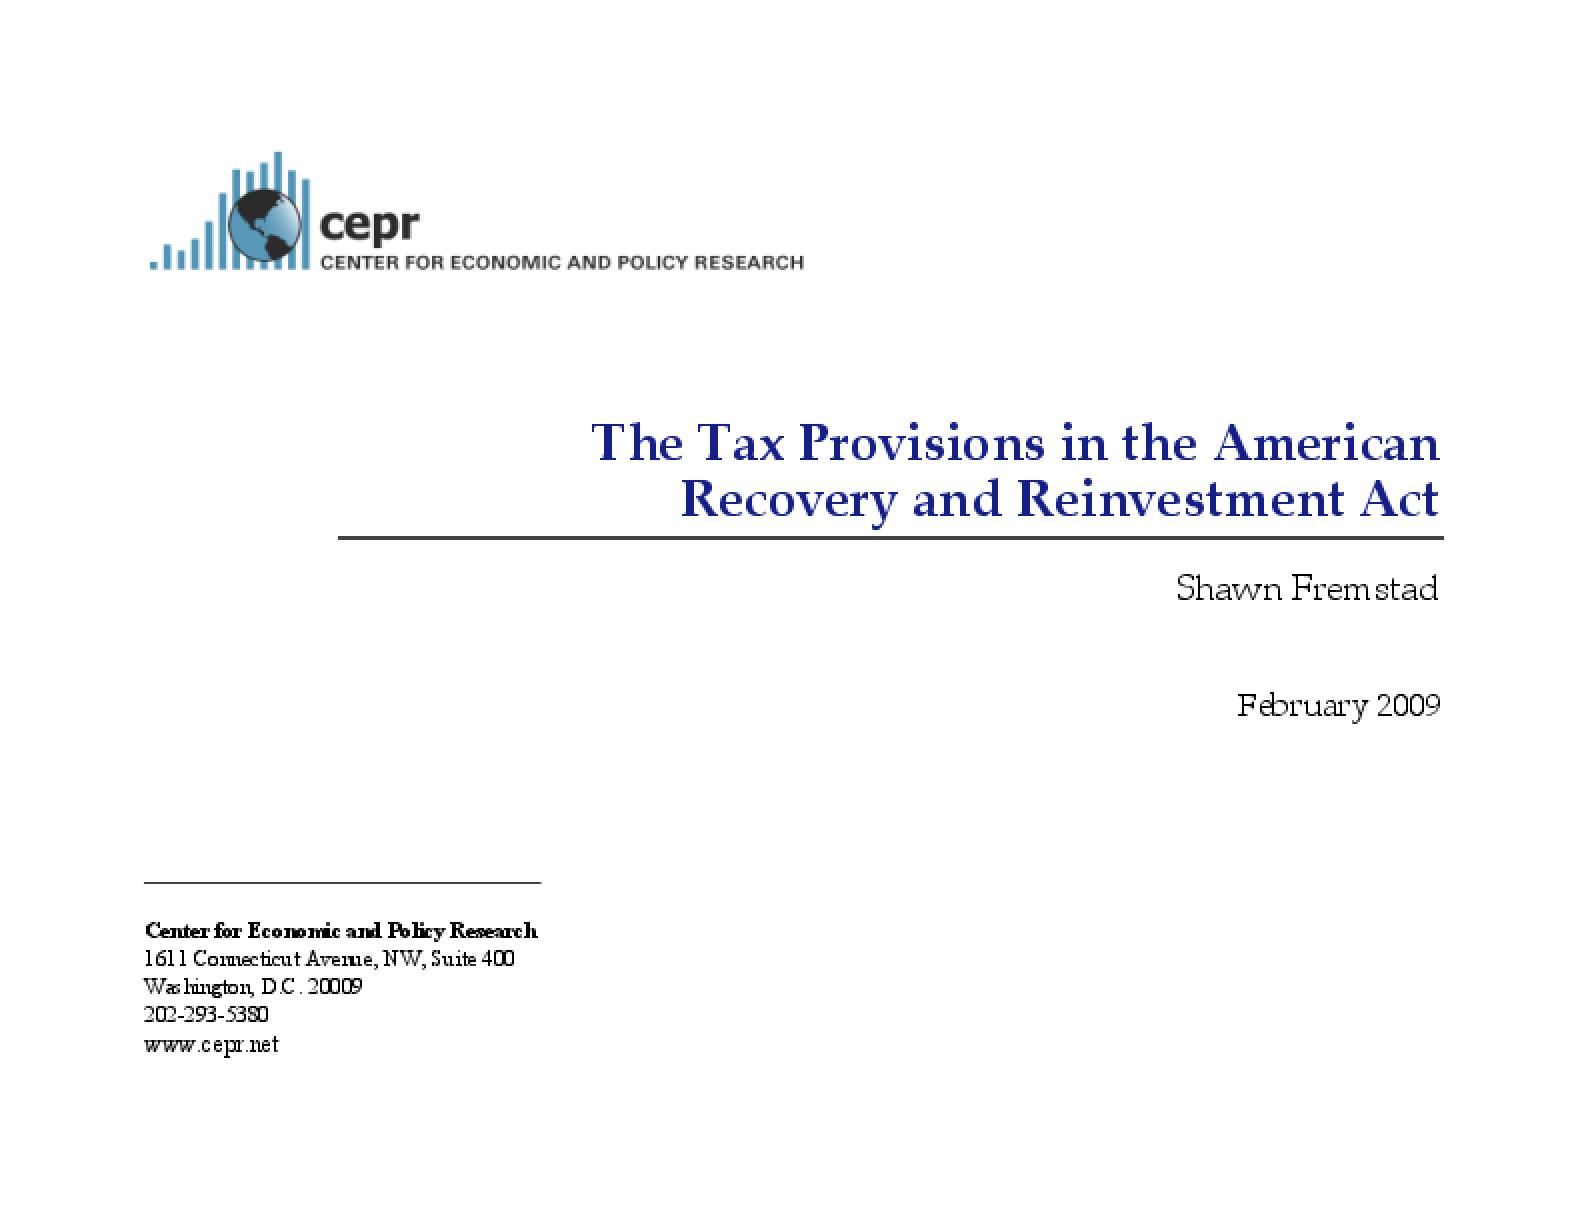 The Tax Provisions in the American Recovery and Reinvestment Act